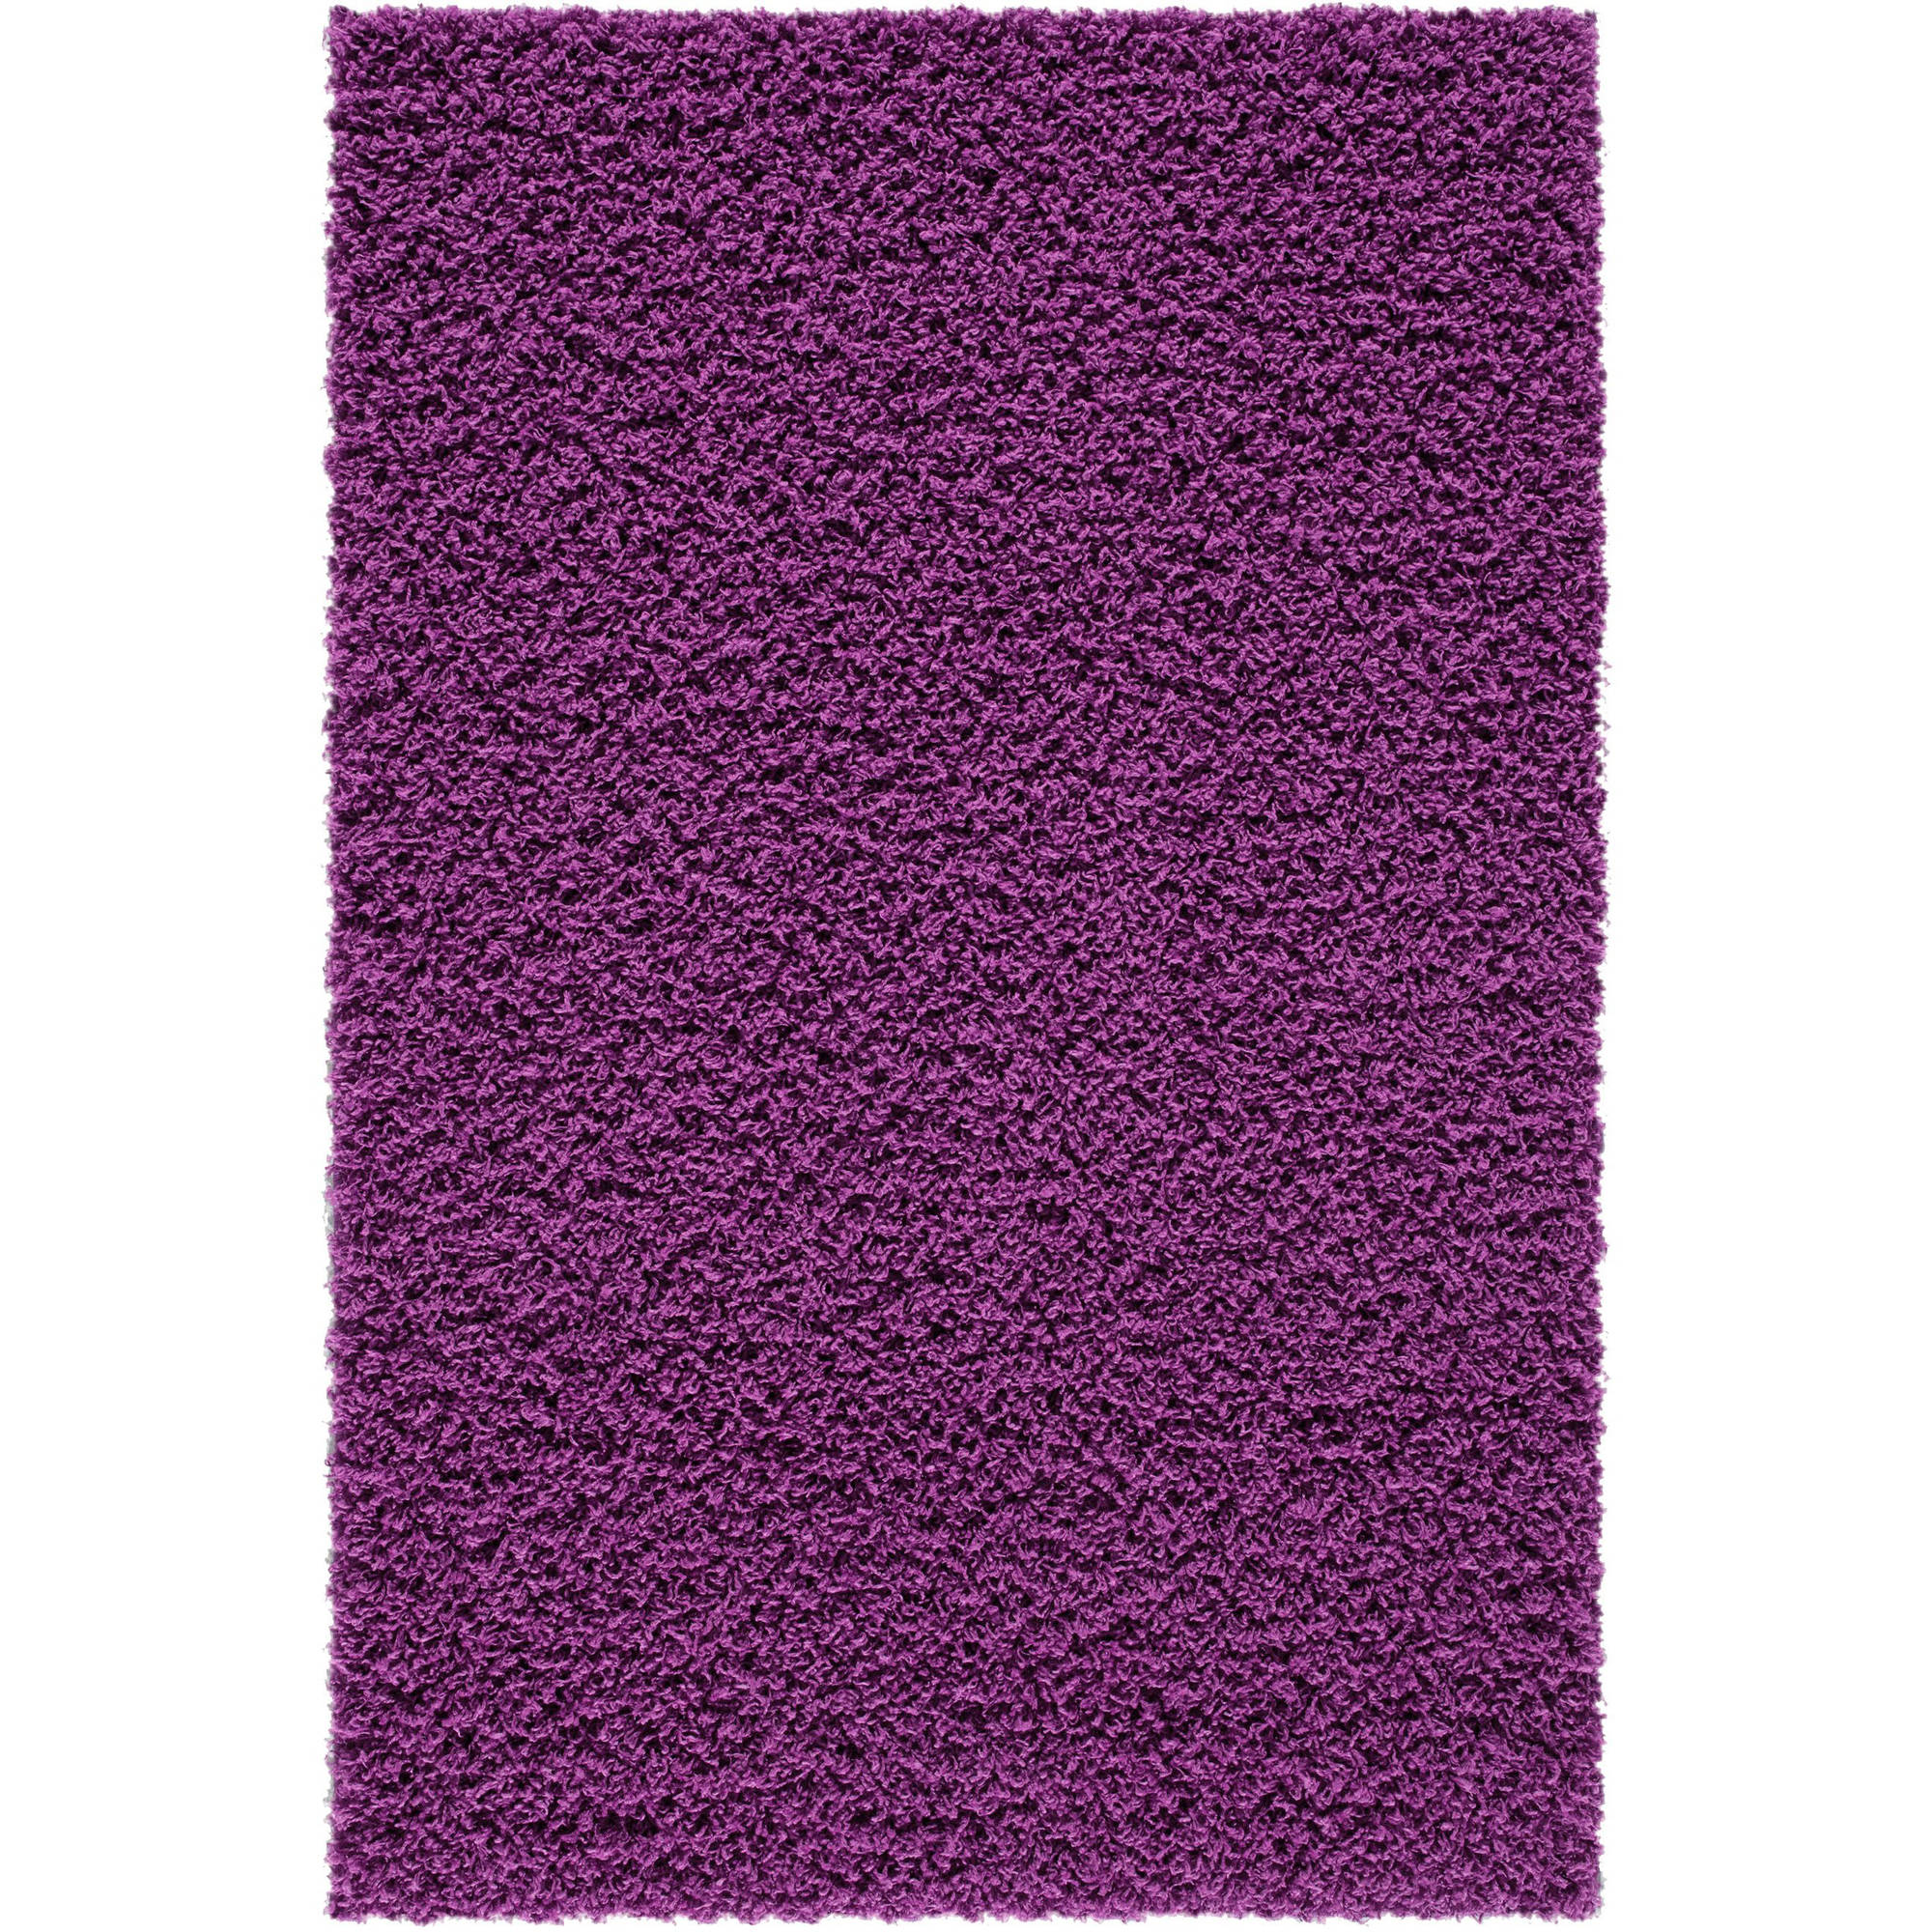 Wall to wall bathroom carpet 5 x 8 - Your Zone Solid Shag Rug Available In Multiple Sizes And Colors Walmart Com